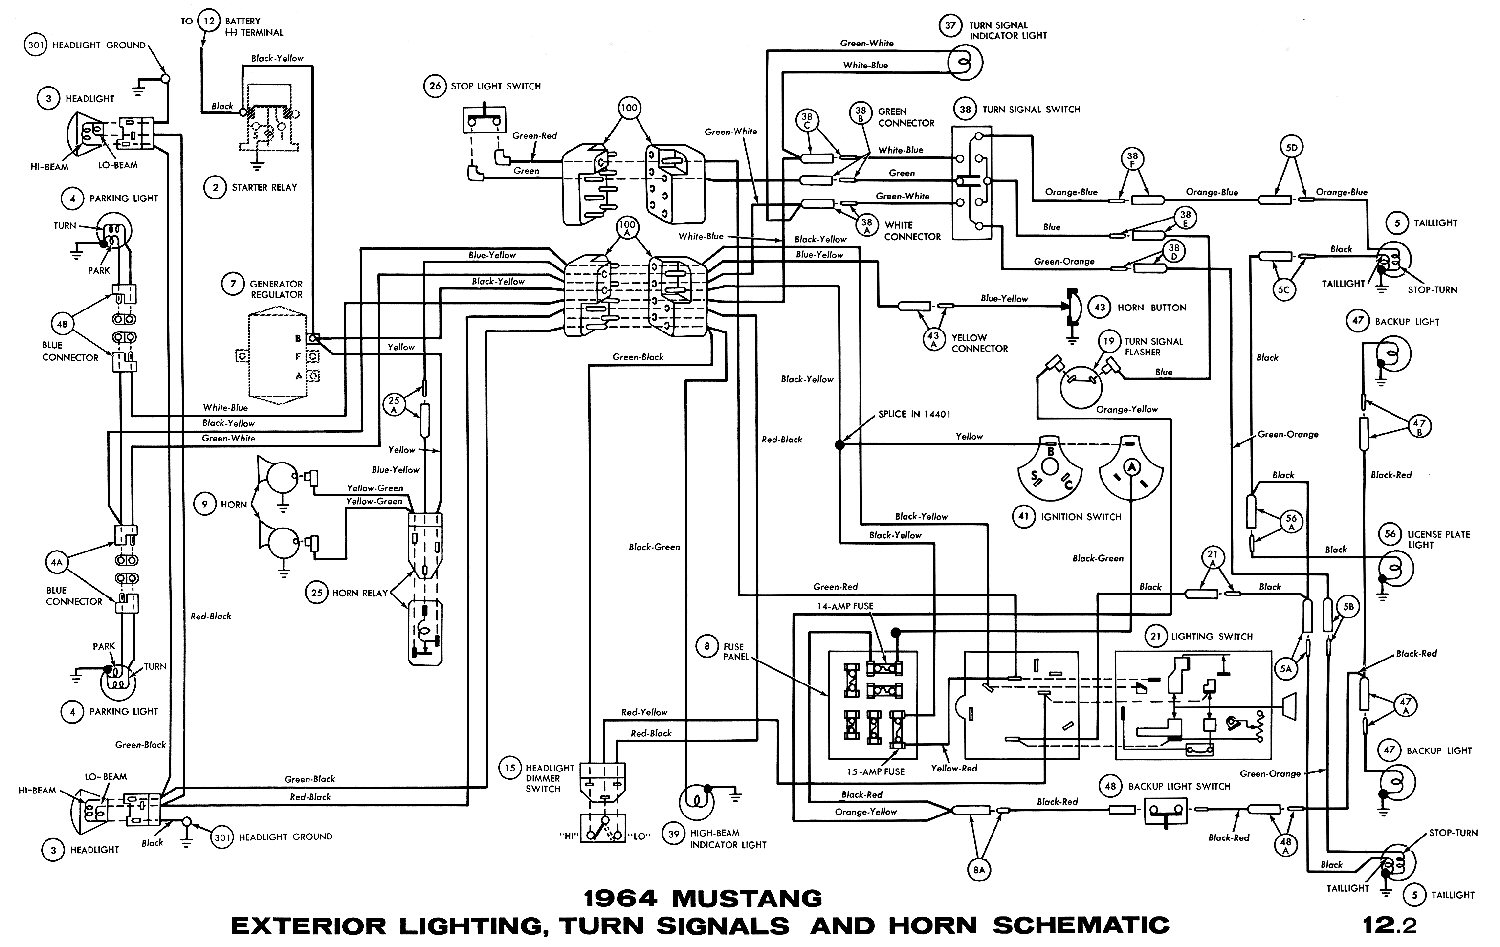 1964i 1964 mustang wiring diagrams average joe restoration 1966 mustang wiring diagrams at creativeand.co